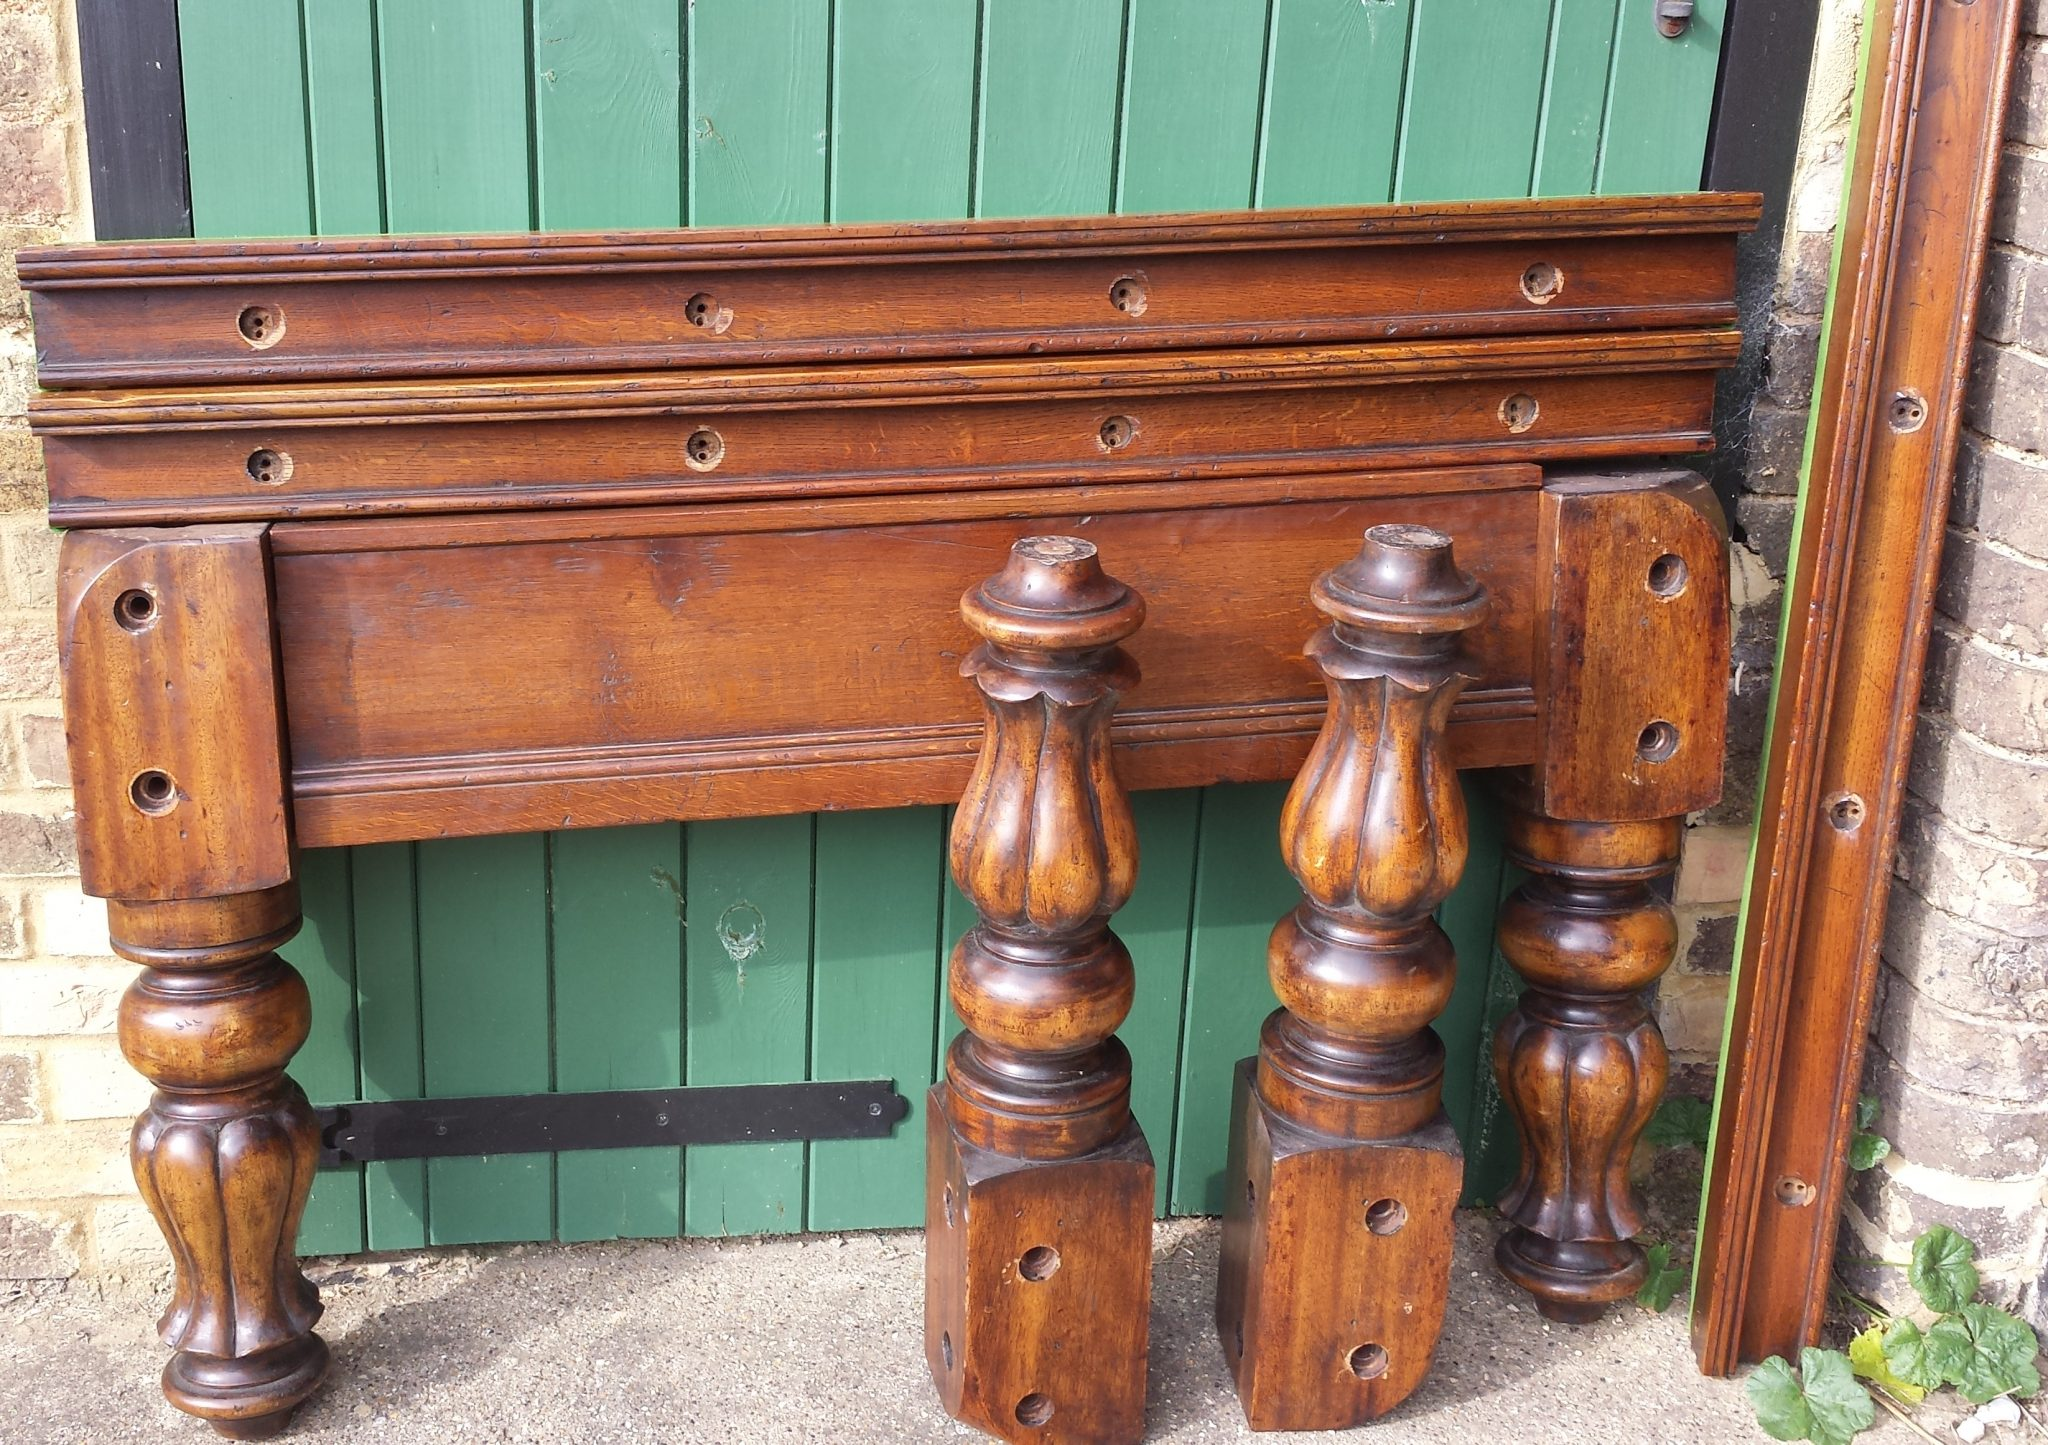 Antique Snooker Tables For Sale Browns Antiques